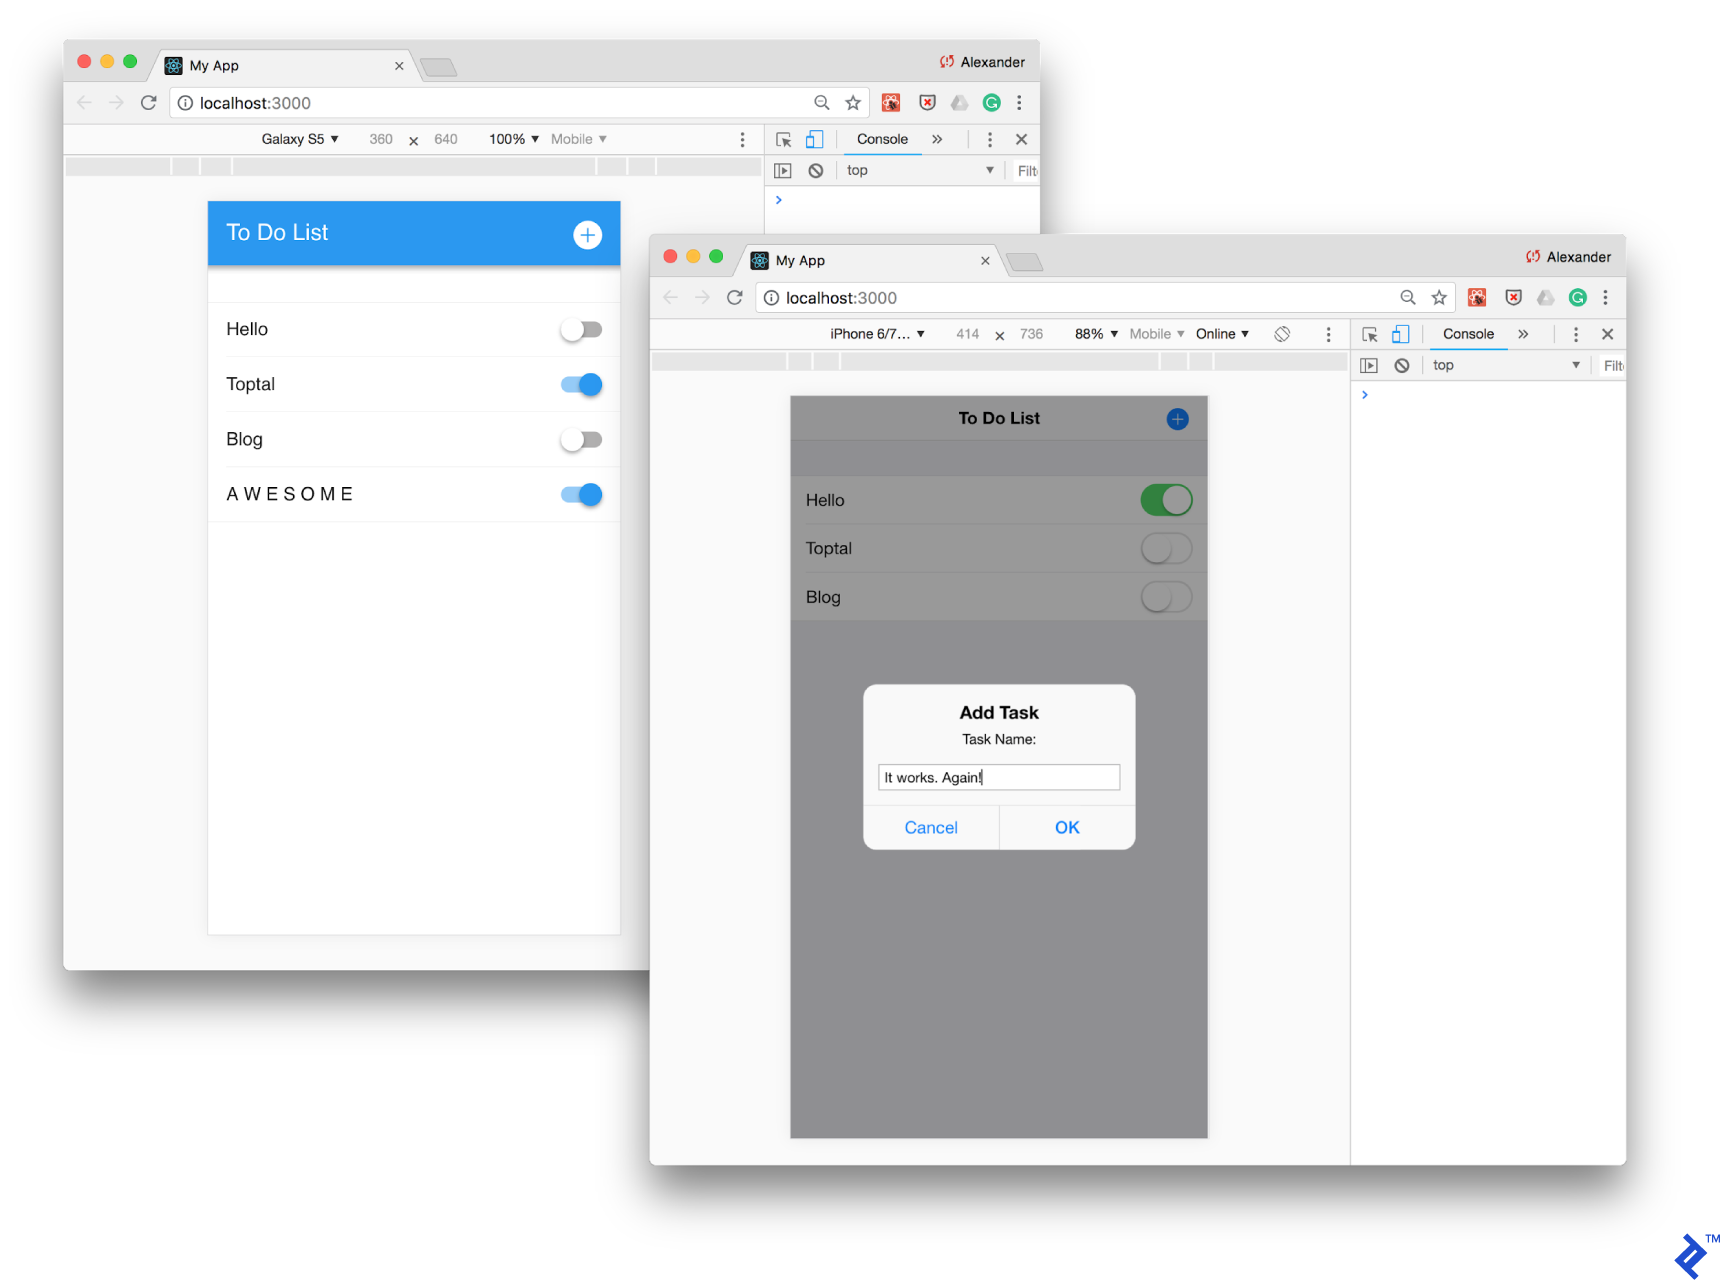 Our To Do application running via Framework7, simulated by Chrome DevTools in Android and iOS modes